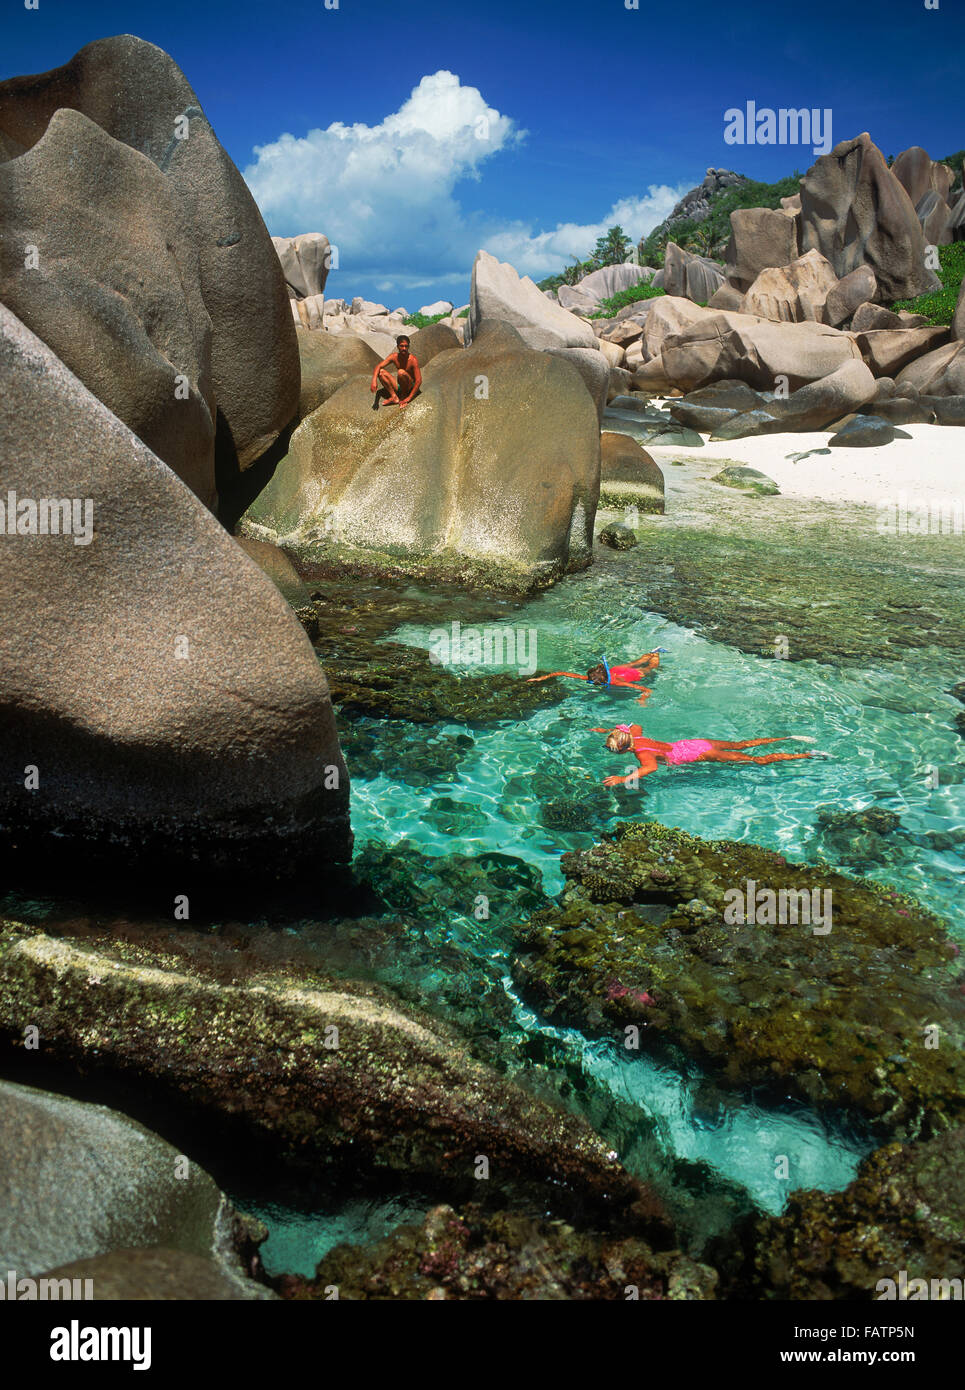 Tourists snorkeling in tide pools on La Digue Island in Seychelles - Stock Image